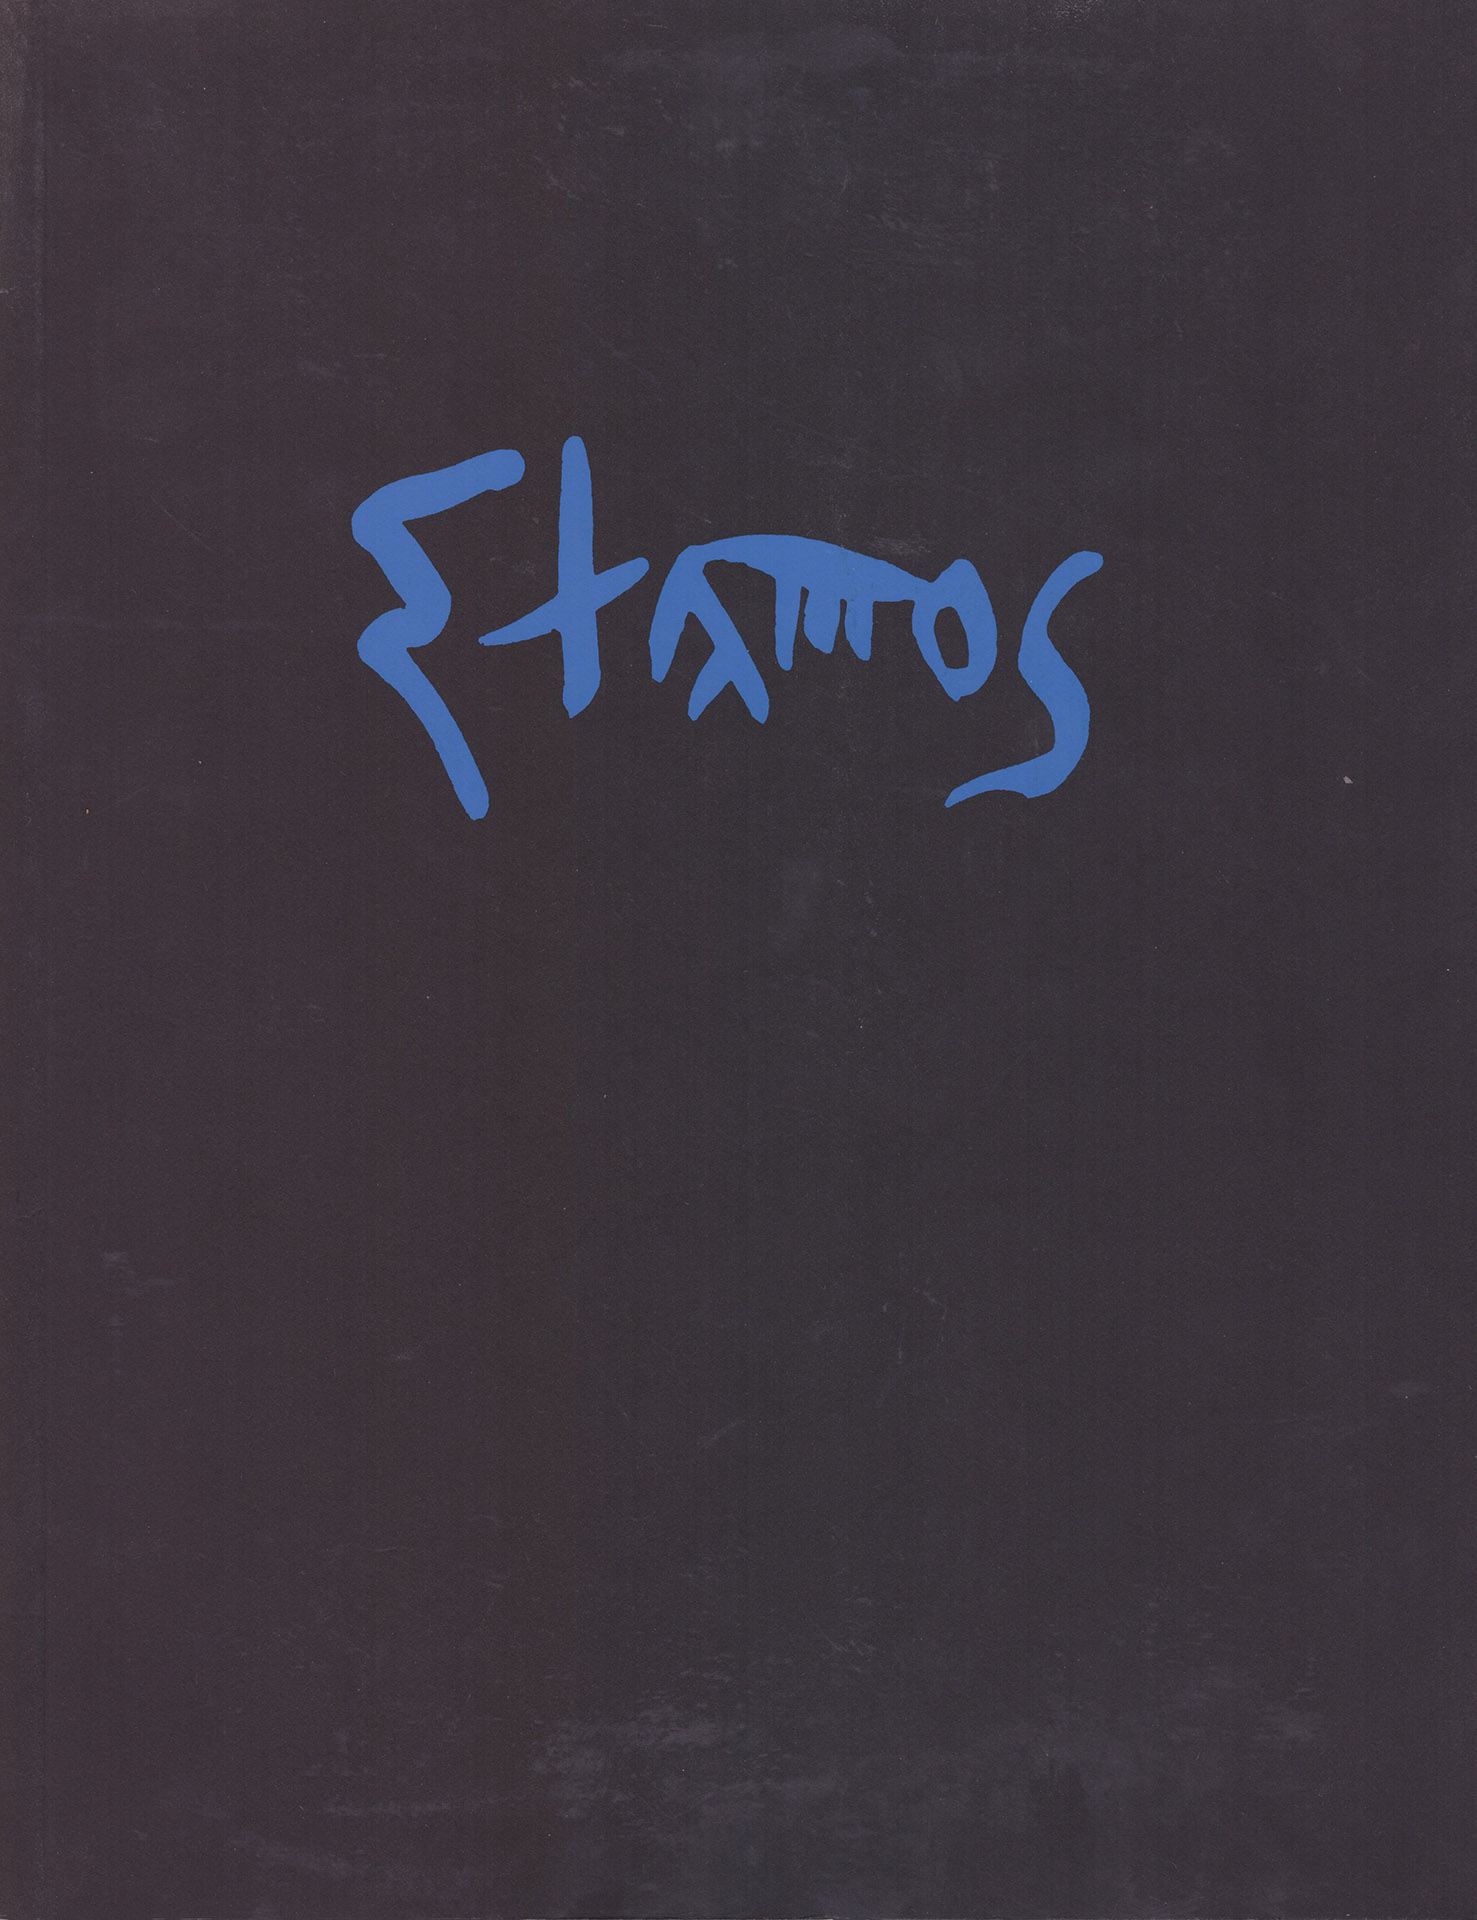 4. Stamos - THEODOROS STAMOS The Dark Paintings - Turske & Turske- Zurich (ISBN.3-9066200-26-X) [1985]